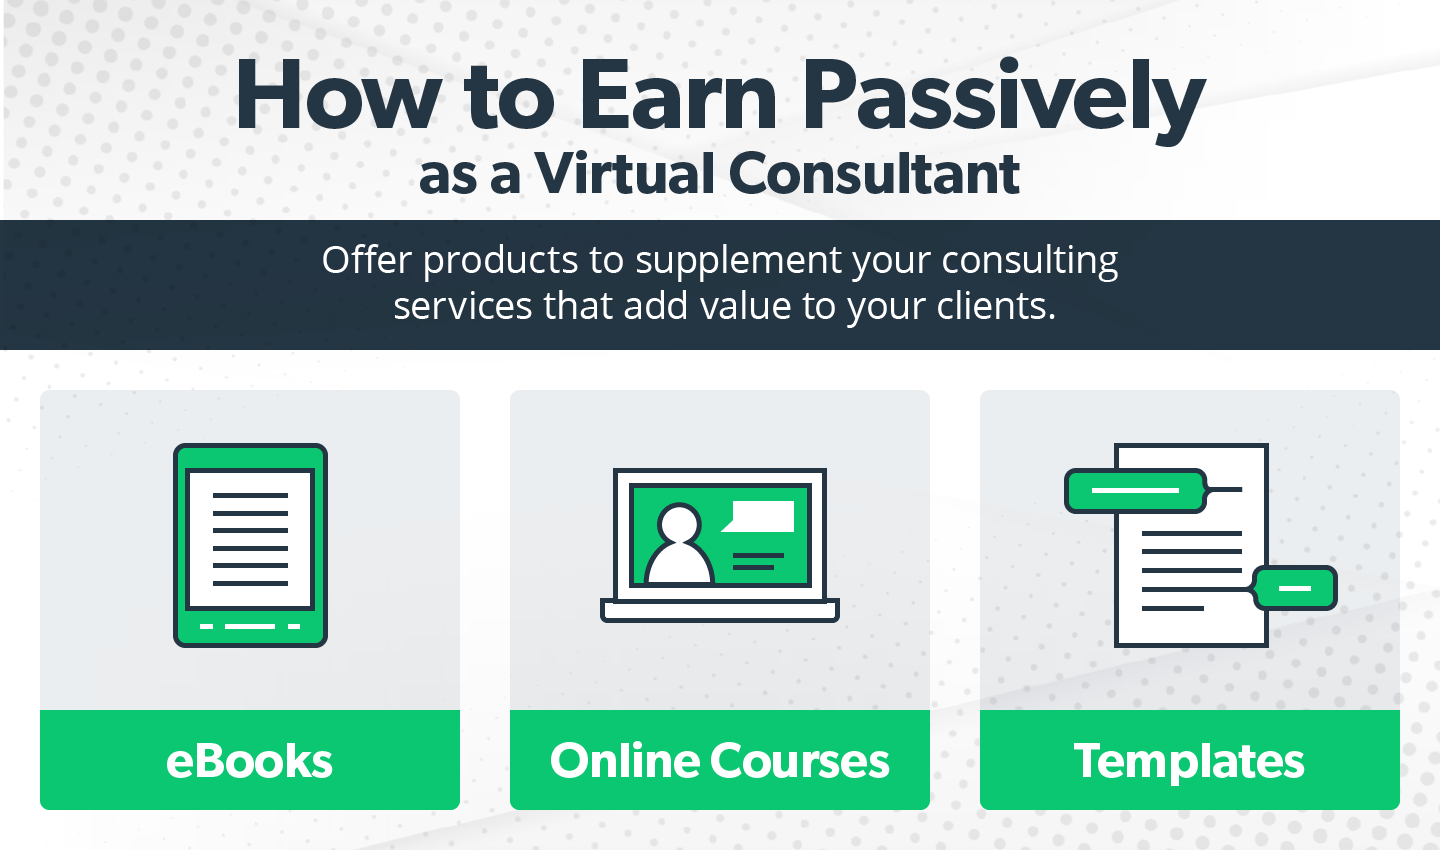 How to Earn Passively aas a Virtual Consultant